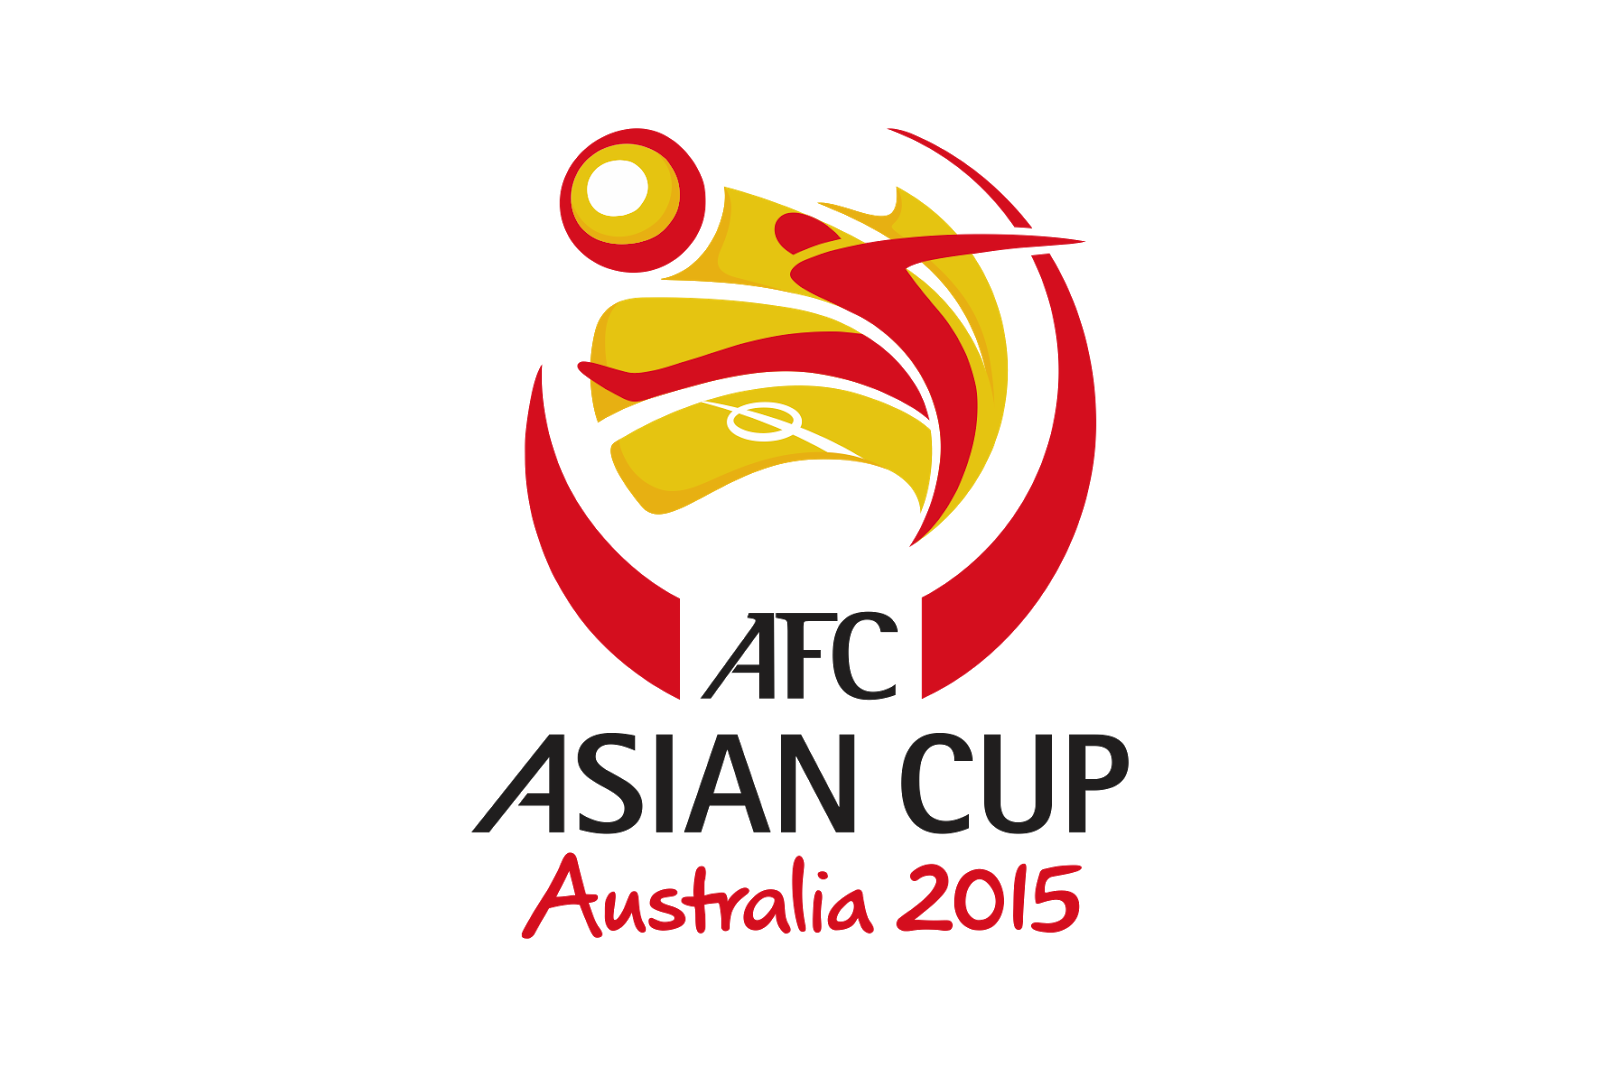 AFC Asian Cup Logo